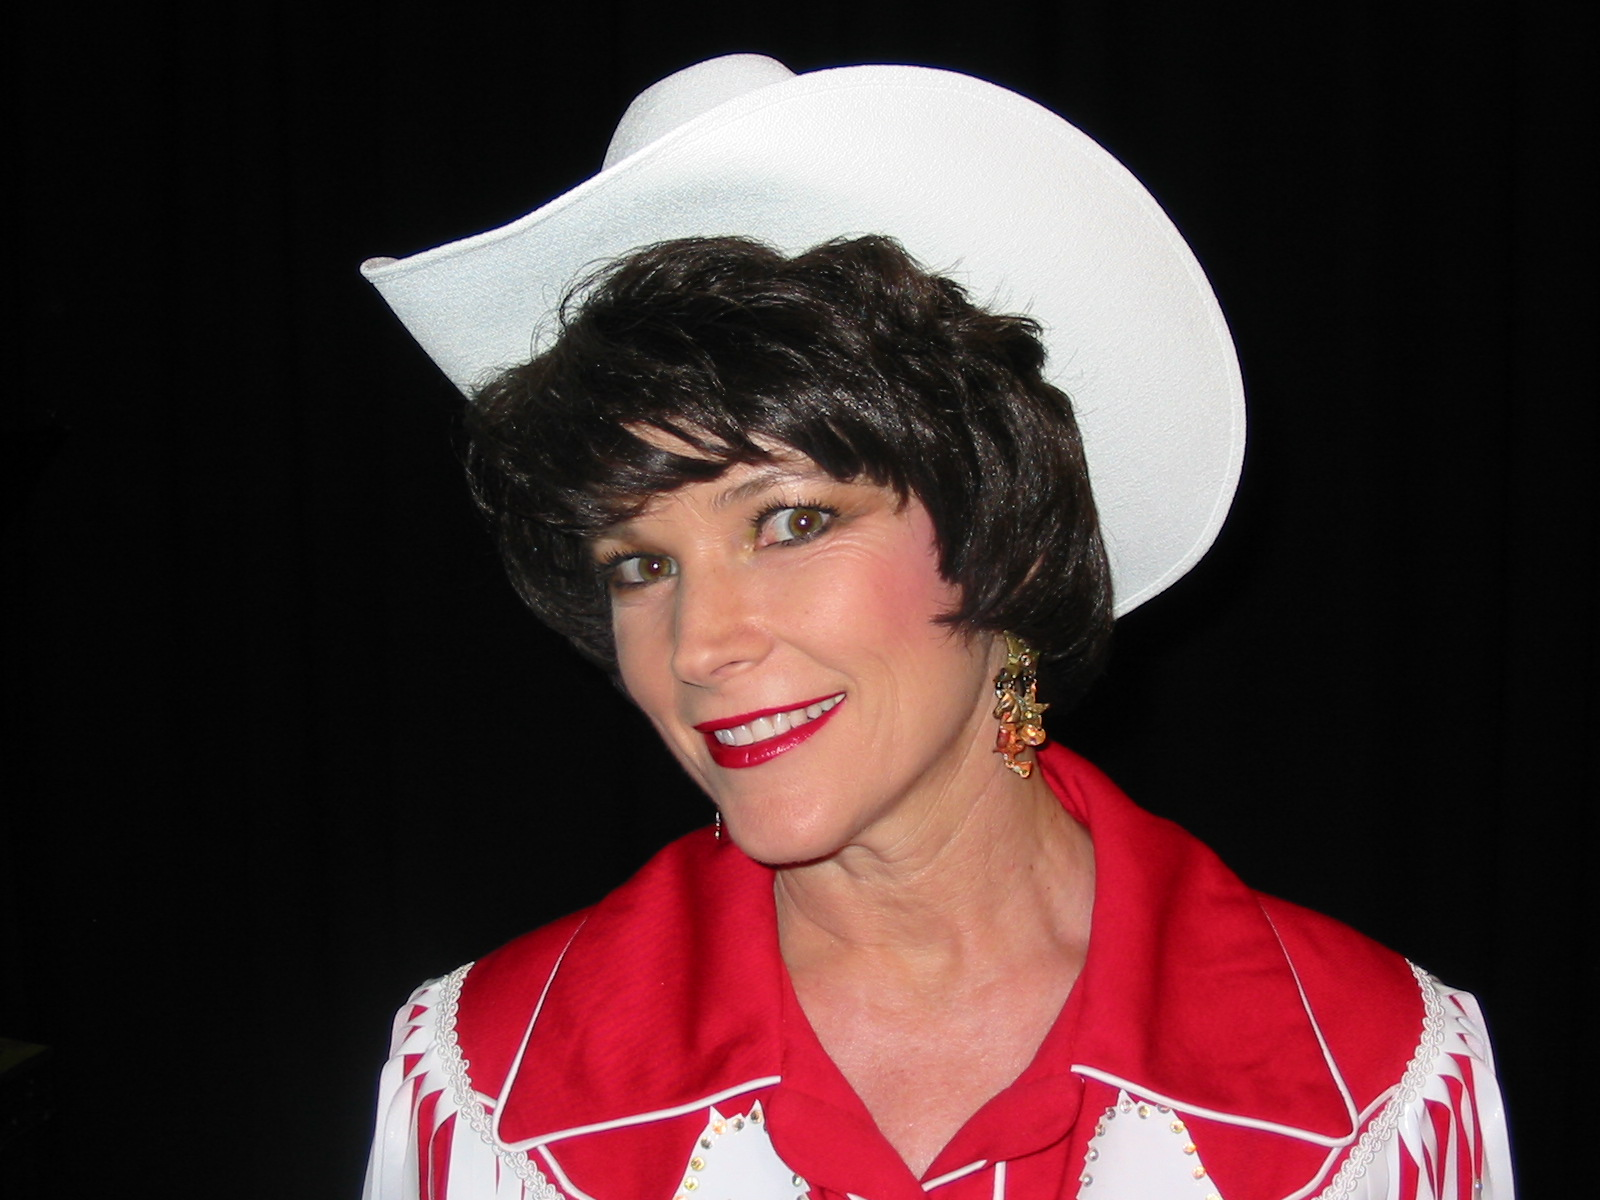 Patsy Cline impersonation | Debi Sander Walker